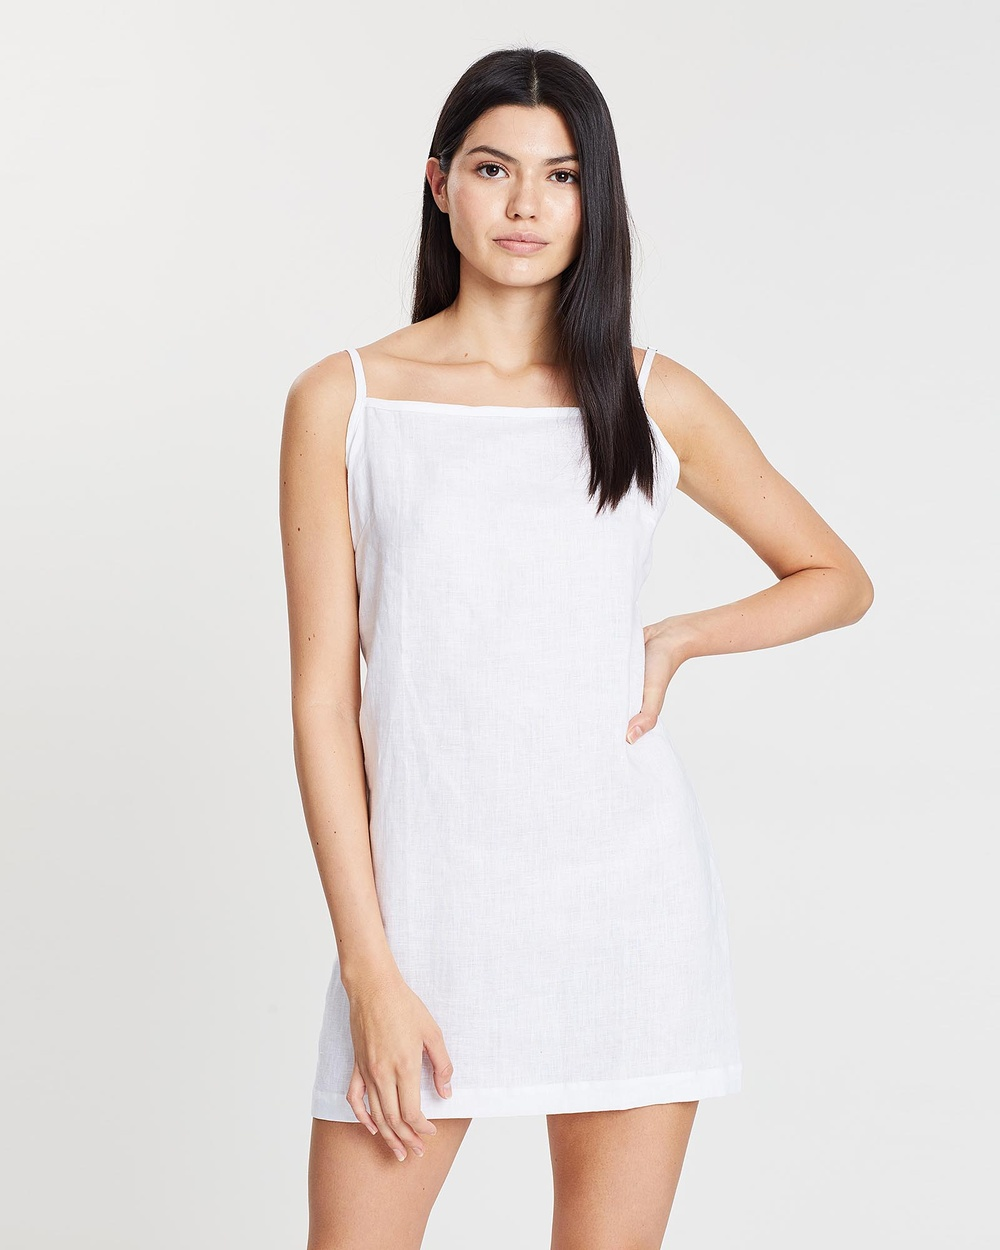 Arthur Apparel Bright White Linen Chemise